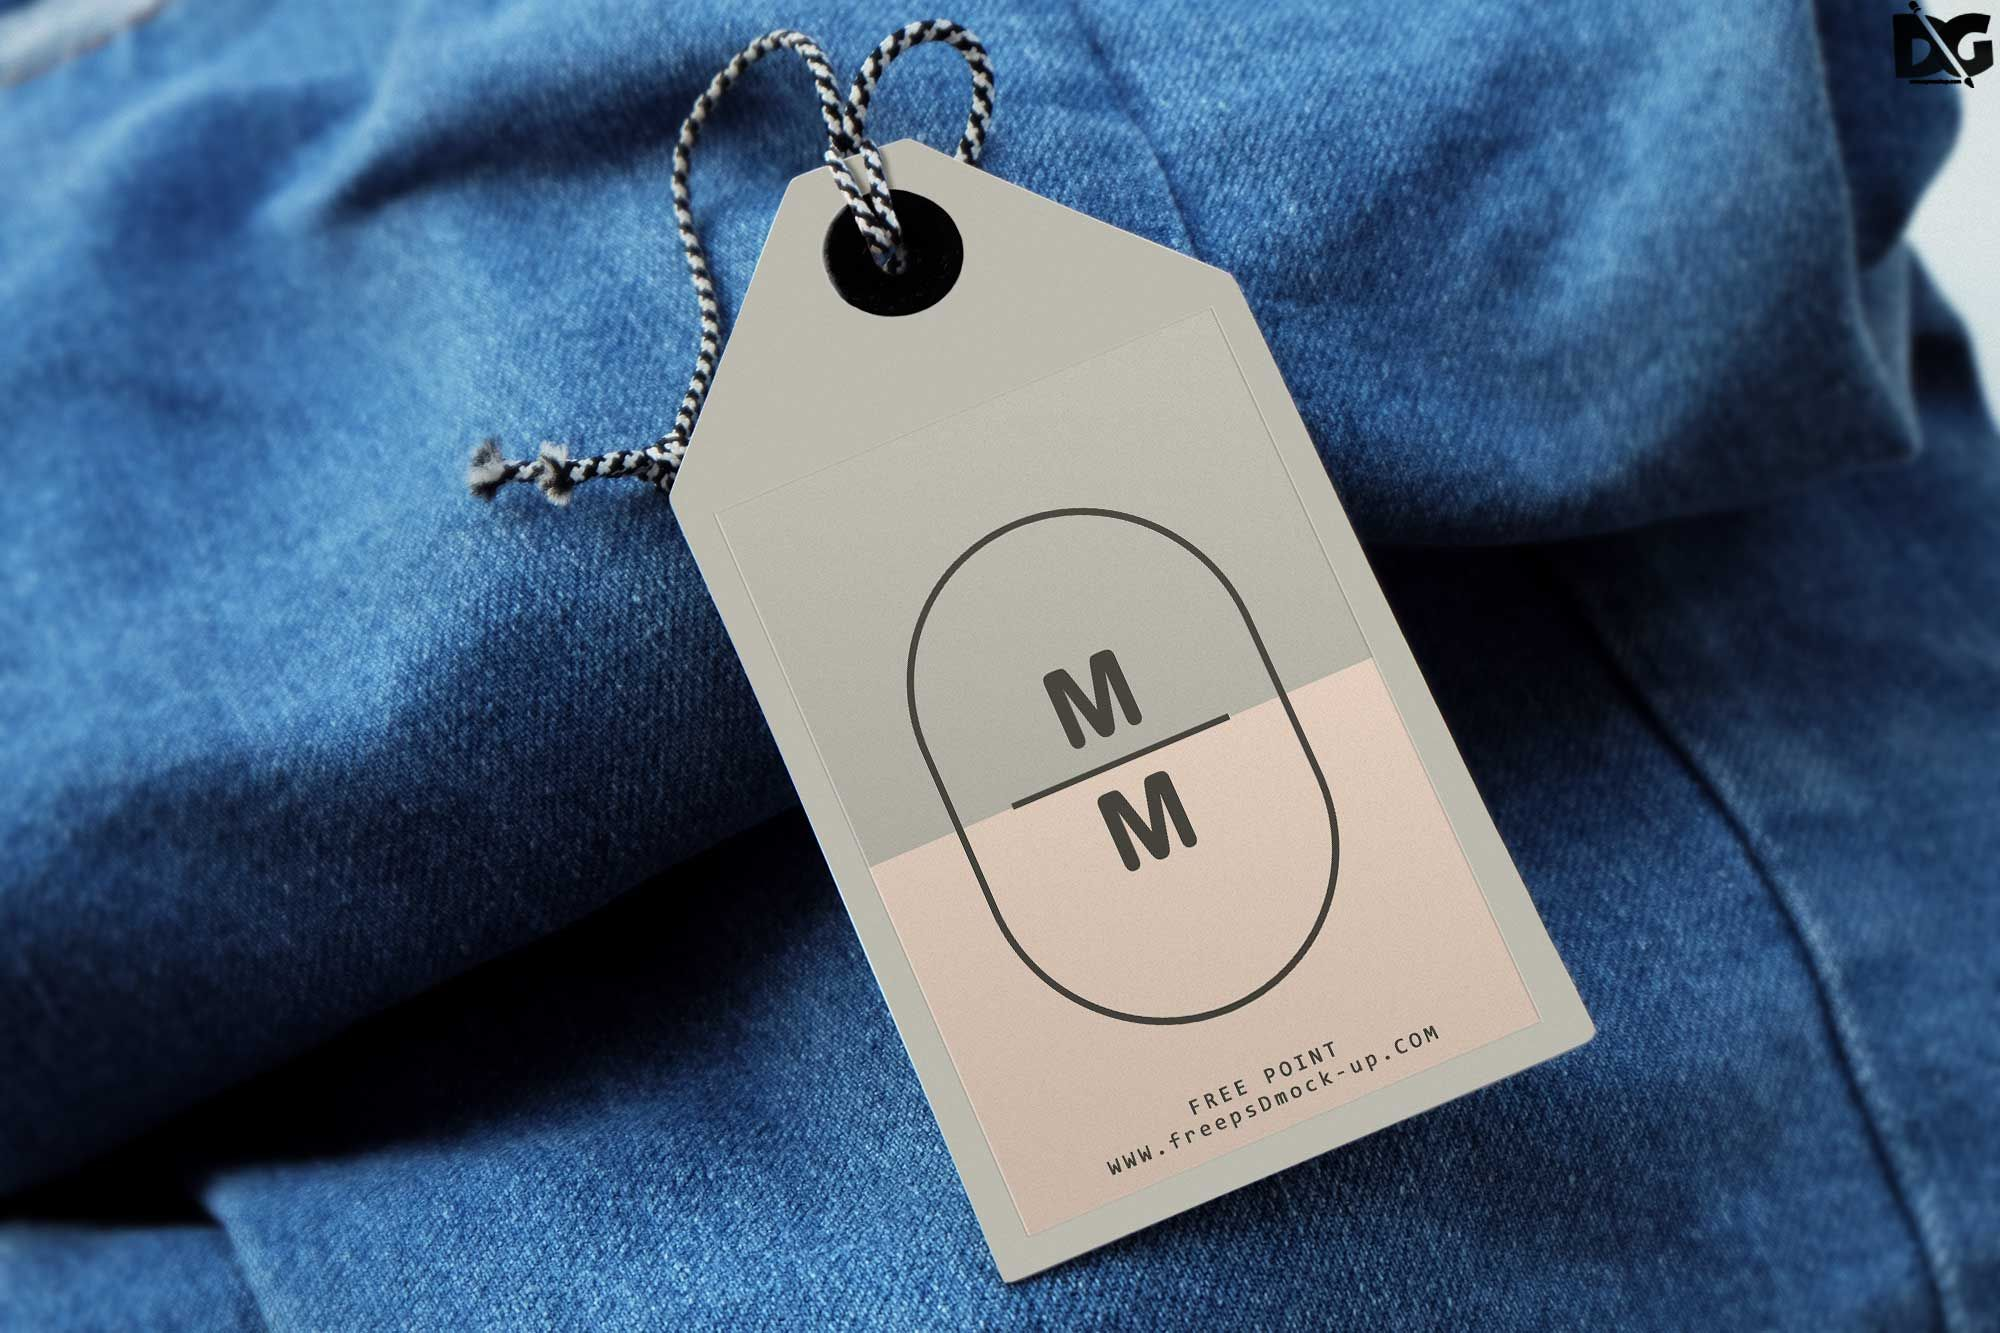 Free Download Psd Clothing Label Mockup Download Downloadmockup Freepsd Label Labelmockup Mockup Psdmo Mockup Free Psd Free Mockup Mockup Free Download